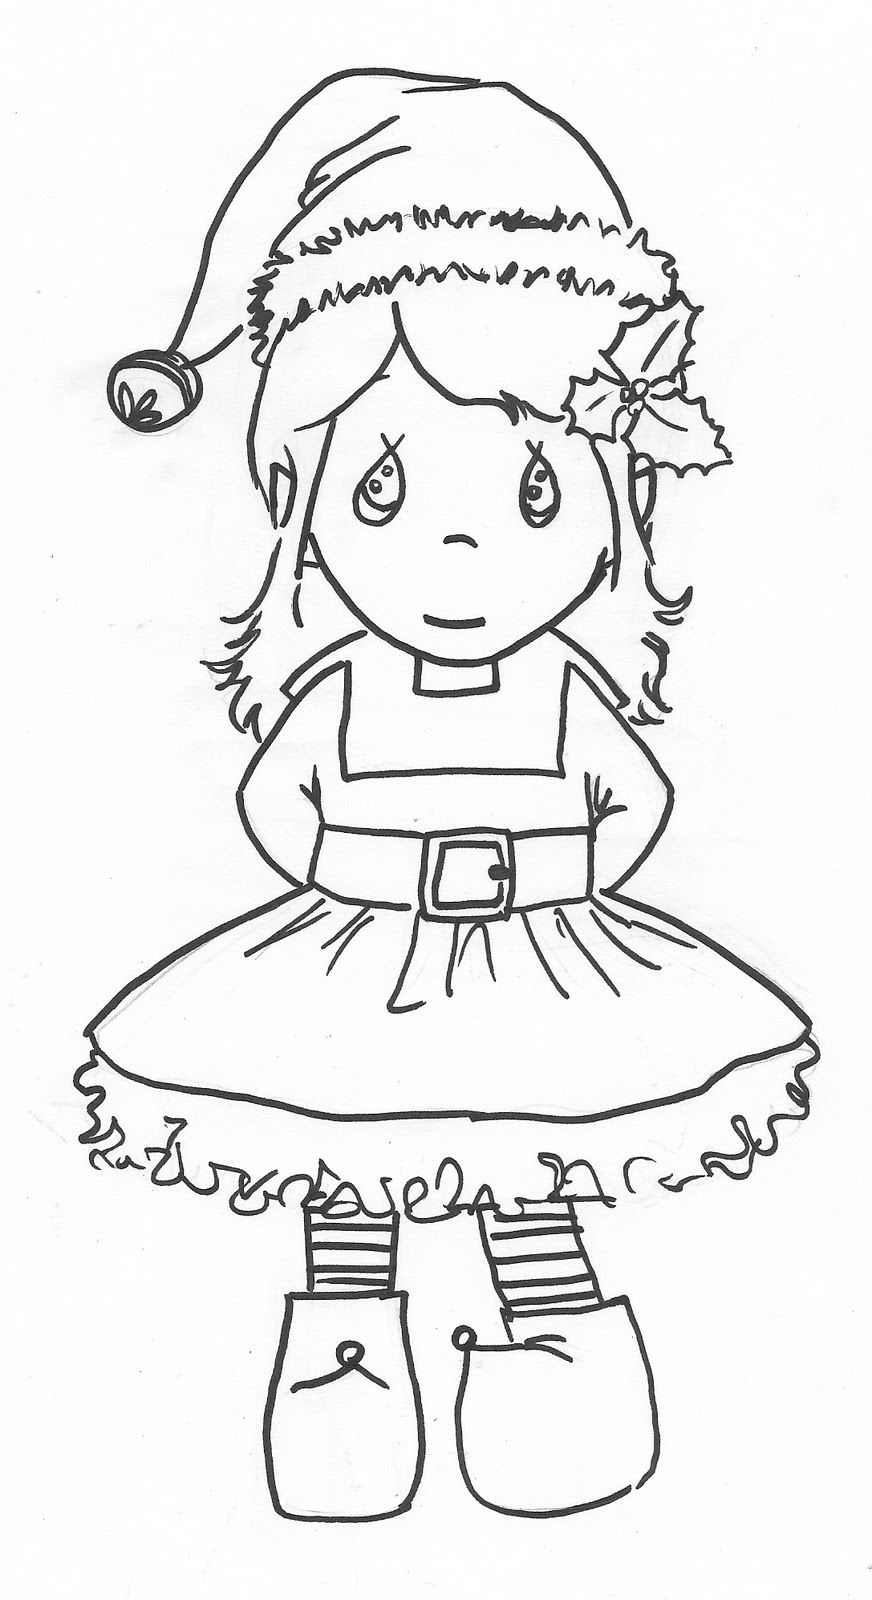 Santa And His Elves Coloring Pages With Christmas Drawing At GetDrawings Com Free For Personal Use